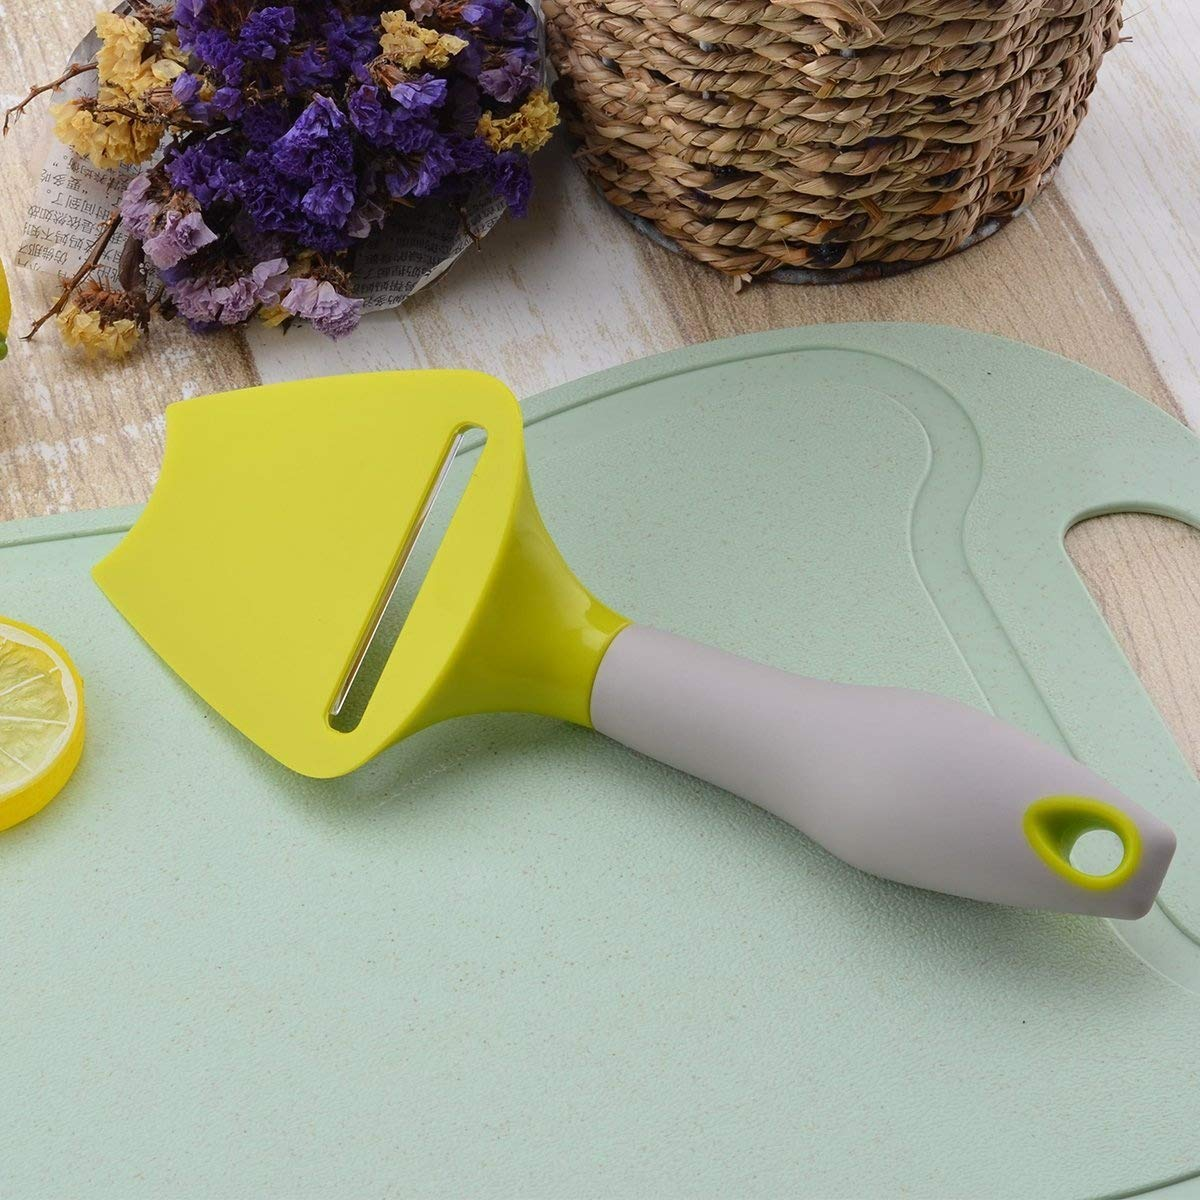 LONGLISHENG Cheese Plane Slicer with Stainless Steel Blade Cutter and Ergonomic Handle